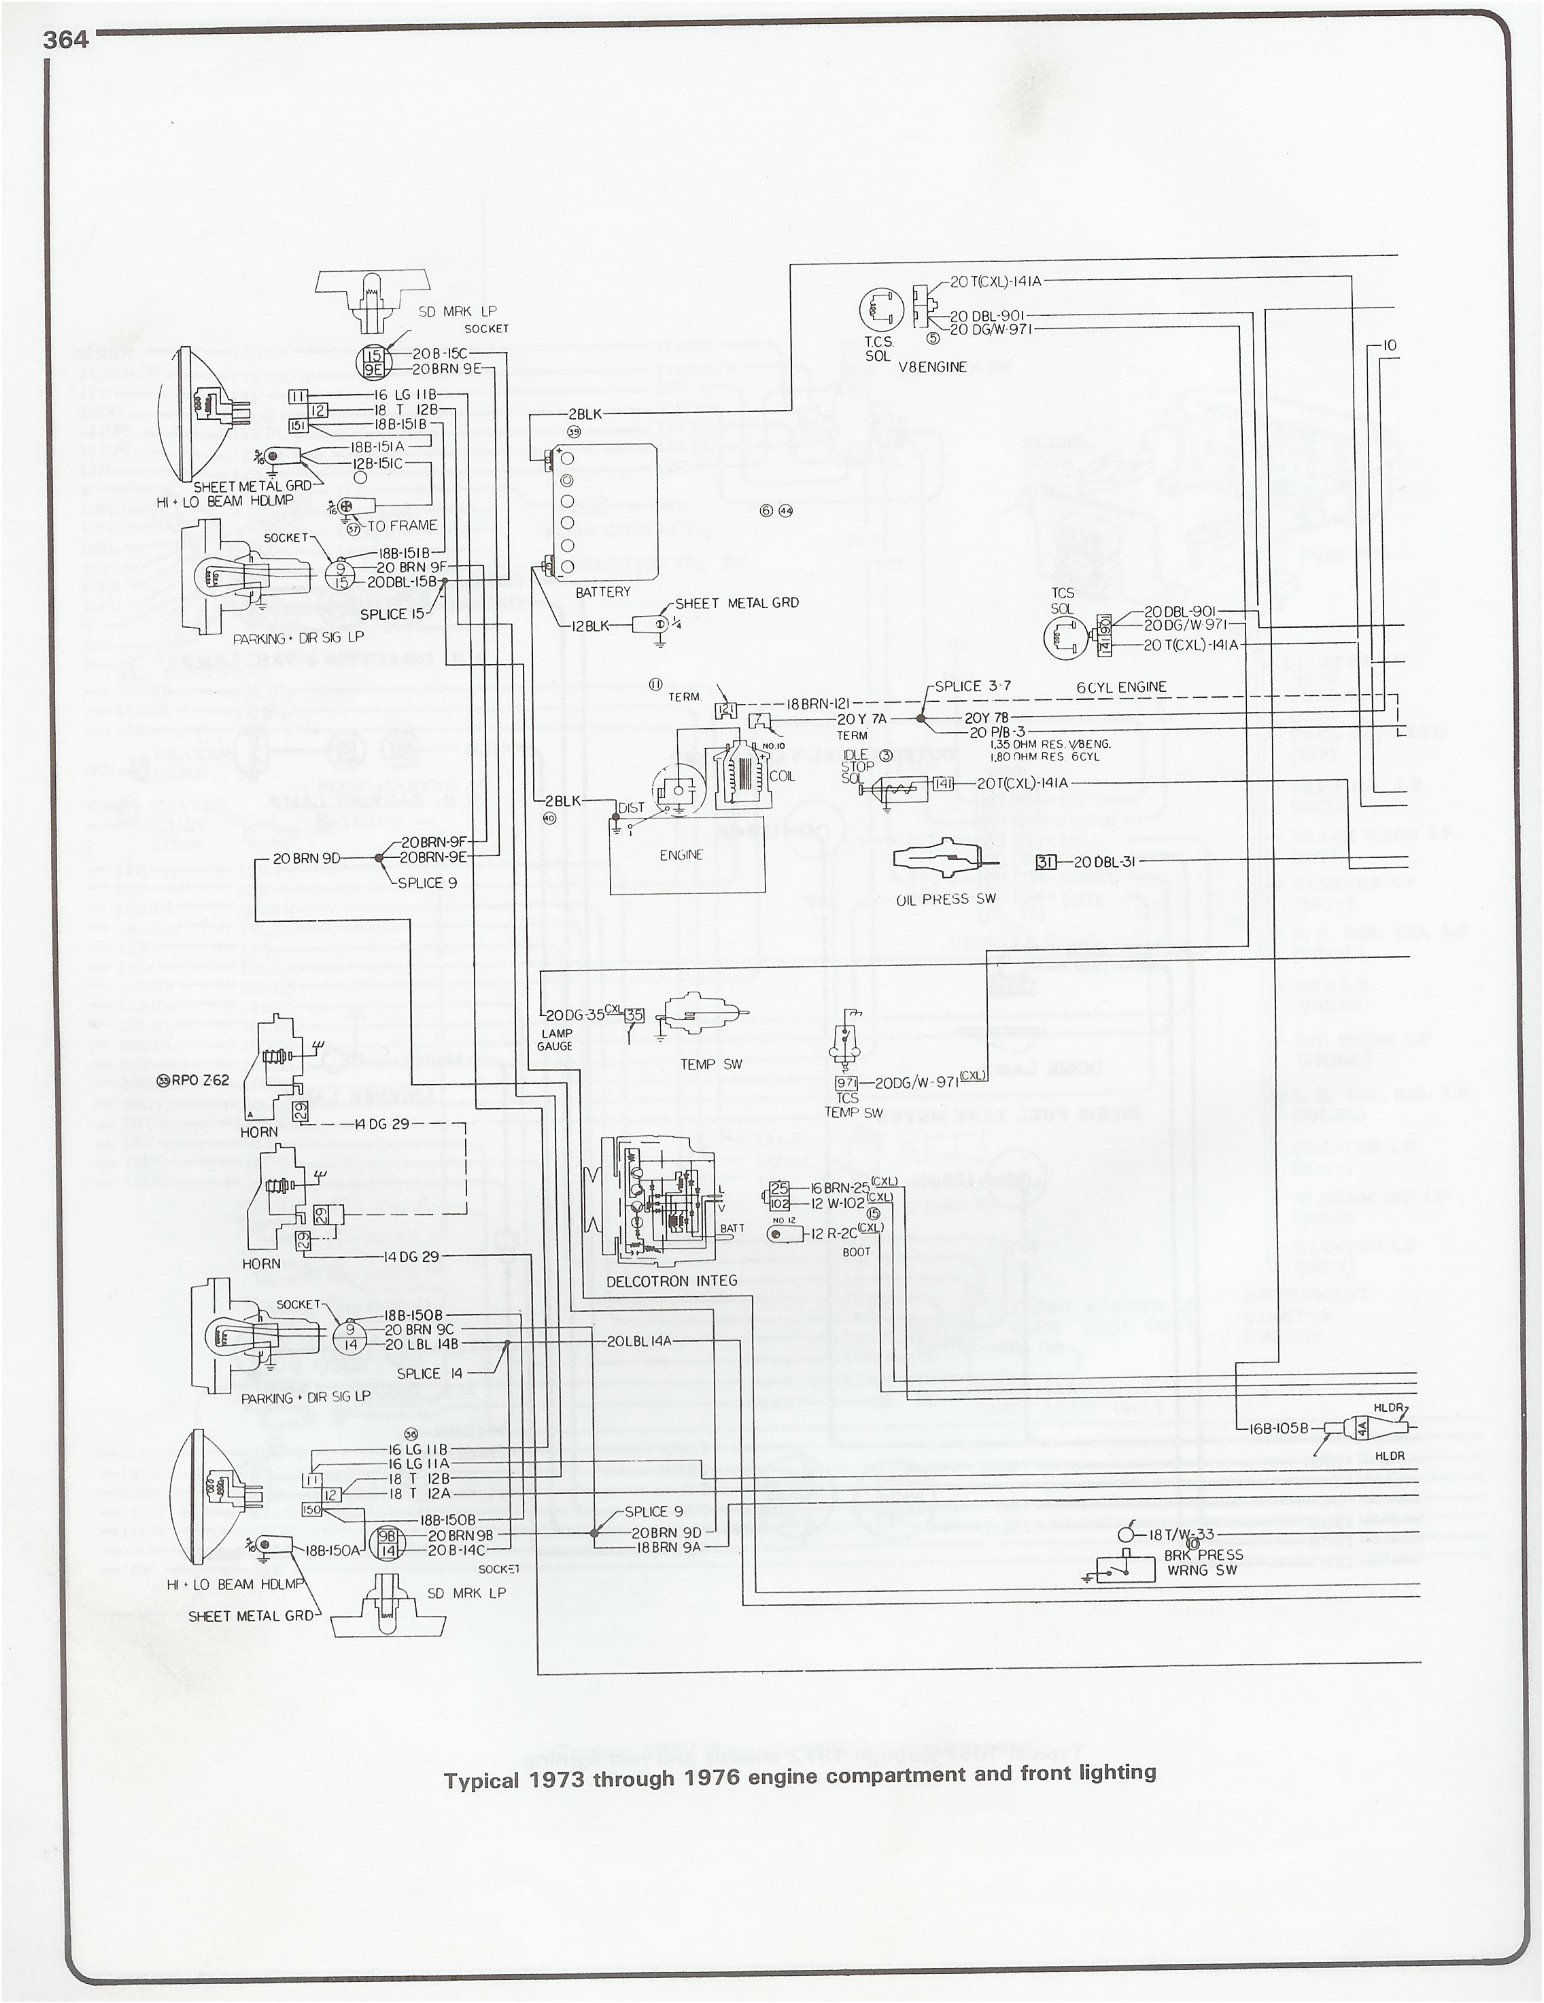 Chevy Cavalier Fuse Box Diagram